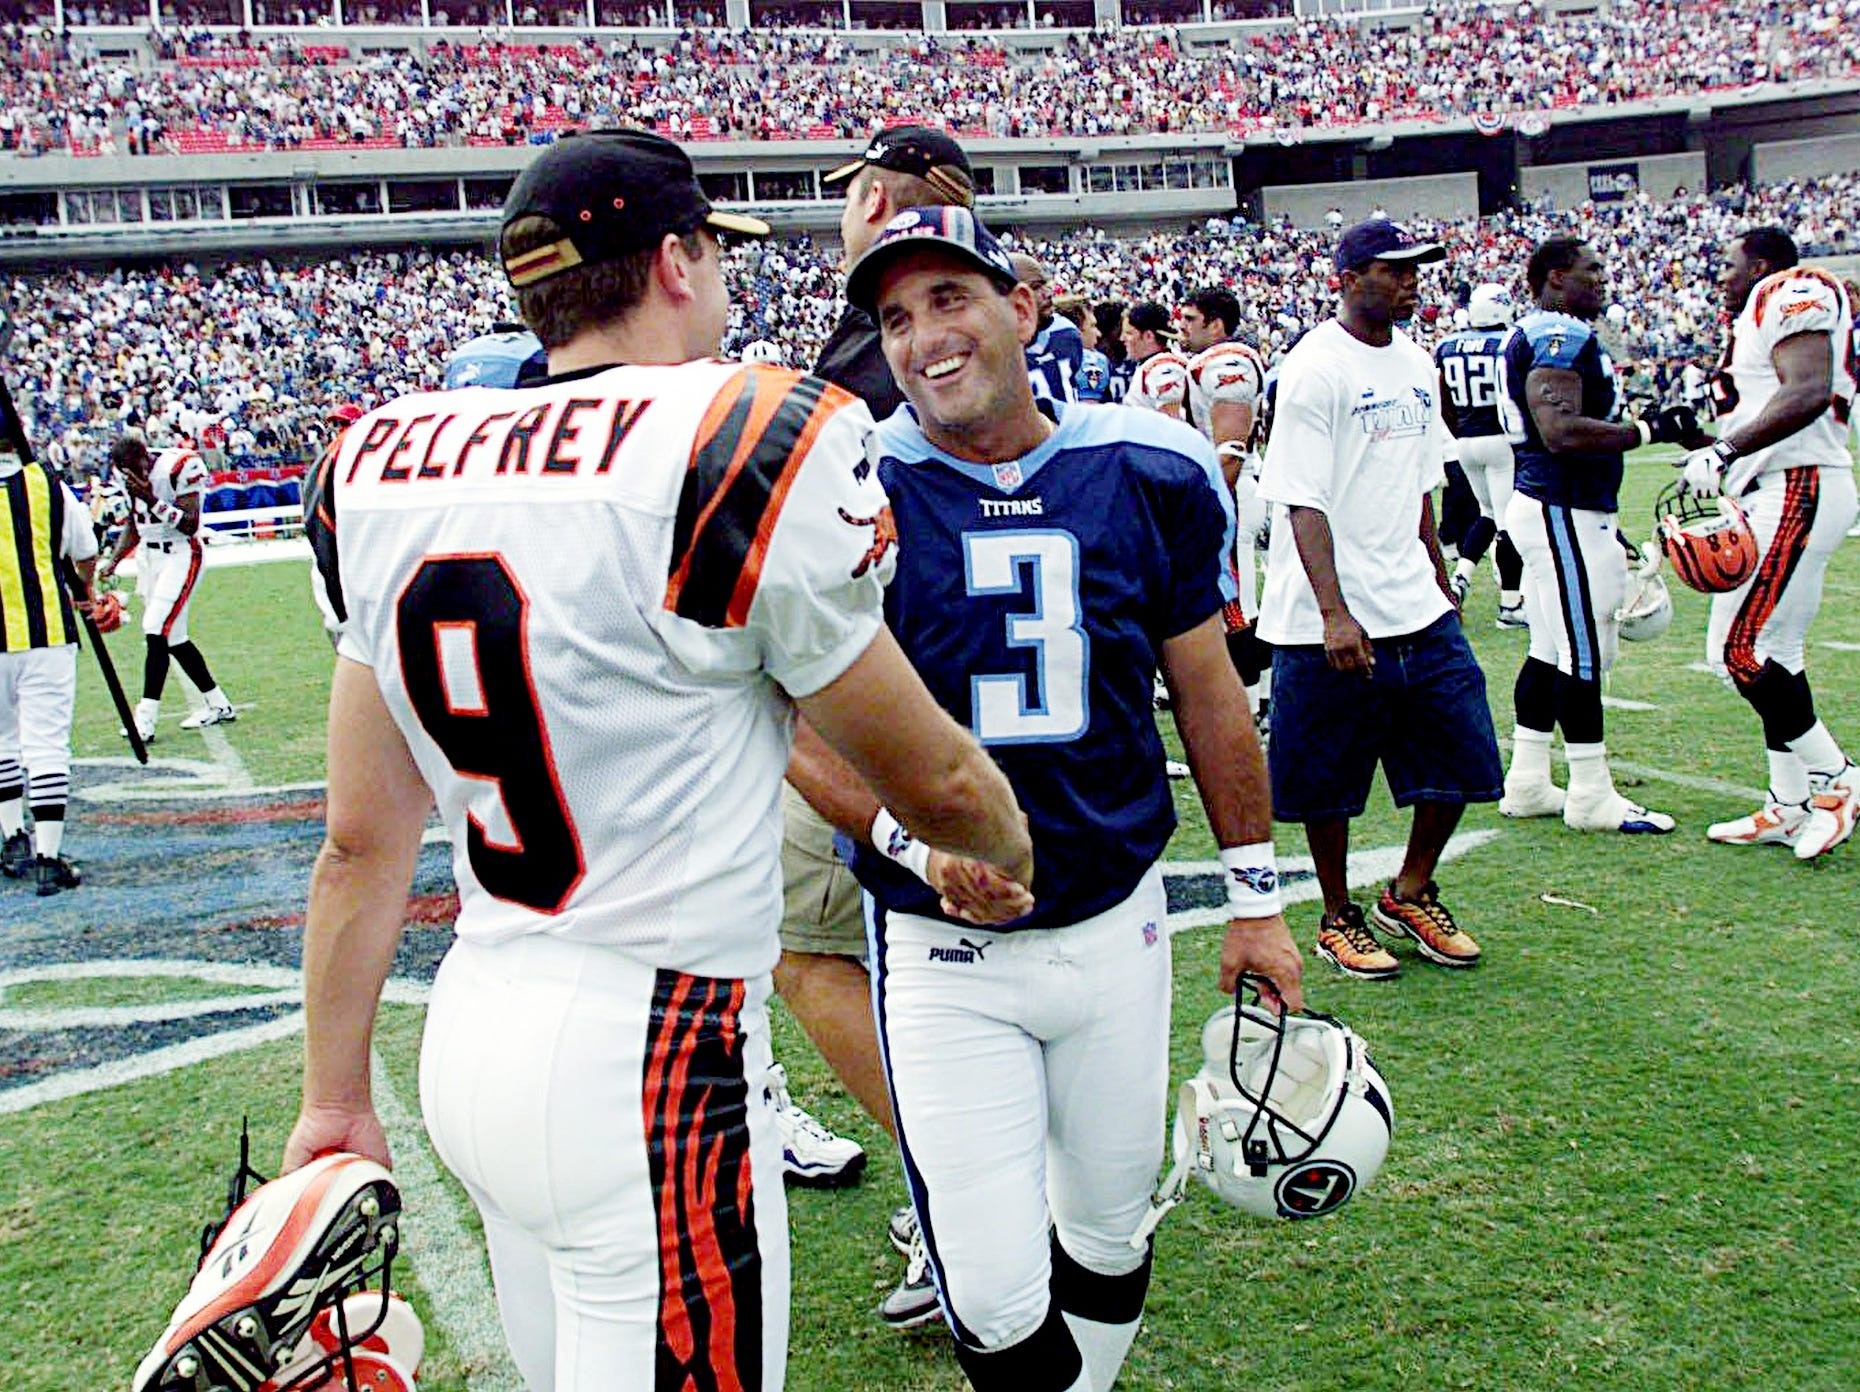 Tennessee Titans place kicer Al Del Greco (3) is being congratules by Cincinnati Bengals kicker Doug Pelfrey (9) after Del Greco winning kick made the final score 36-35 in the season opener at Adelphia Coliseum Sept. 12, 1999.